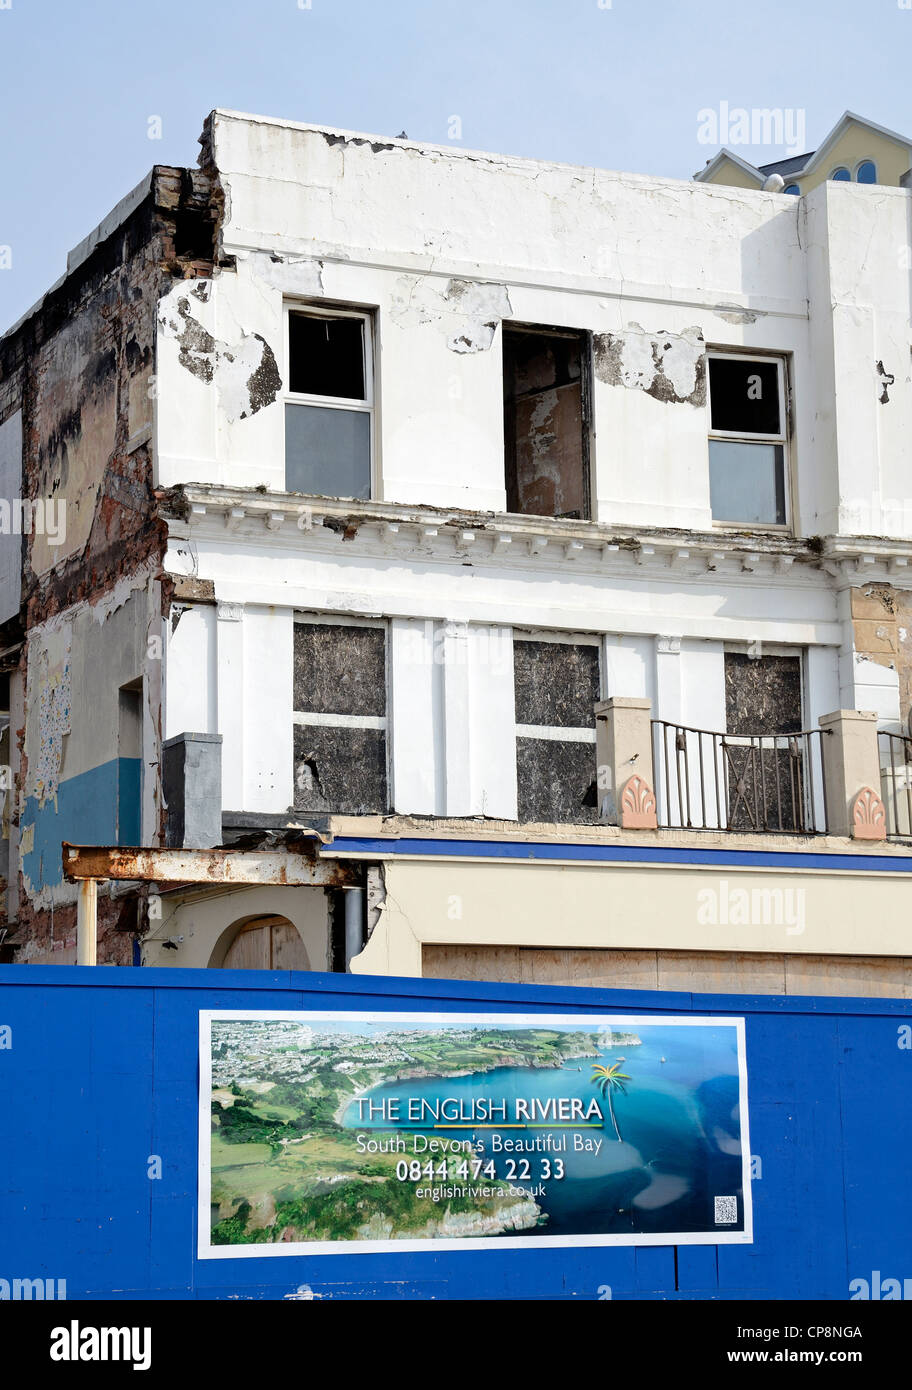 A run down hotel behind a billboard advertising the english riviera at torquay in devon, UK - Stock Image